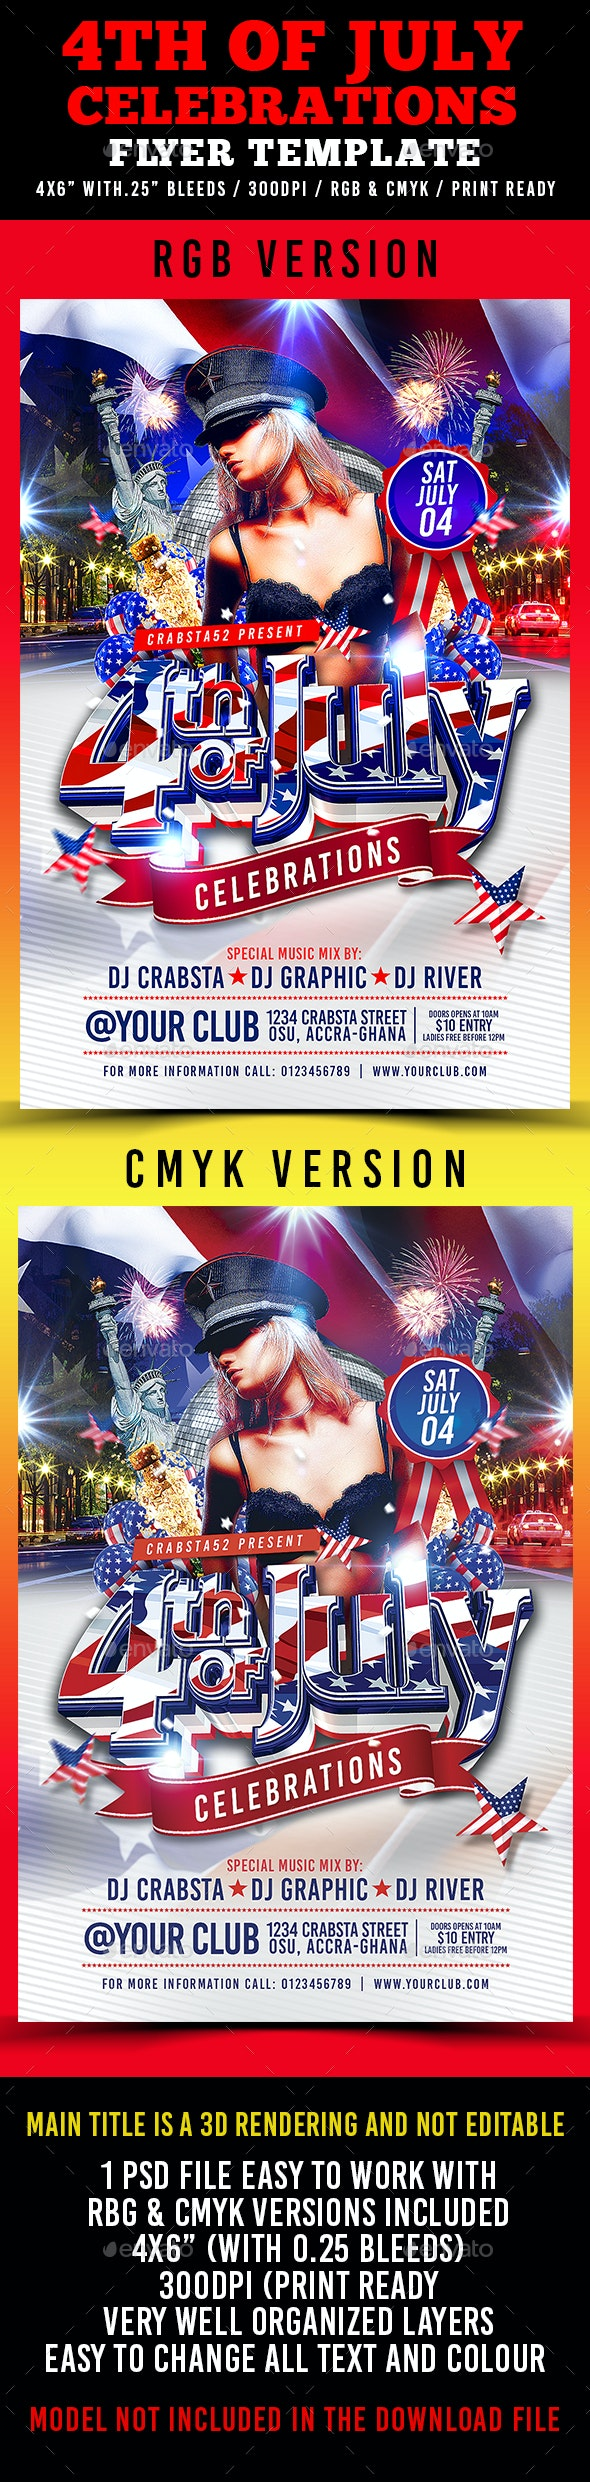 4th of July Celebrations Flyer Template - Flyers Print Templates